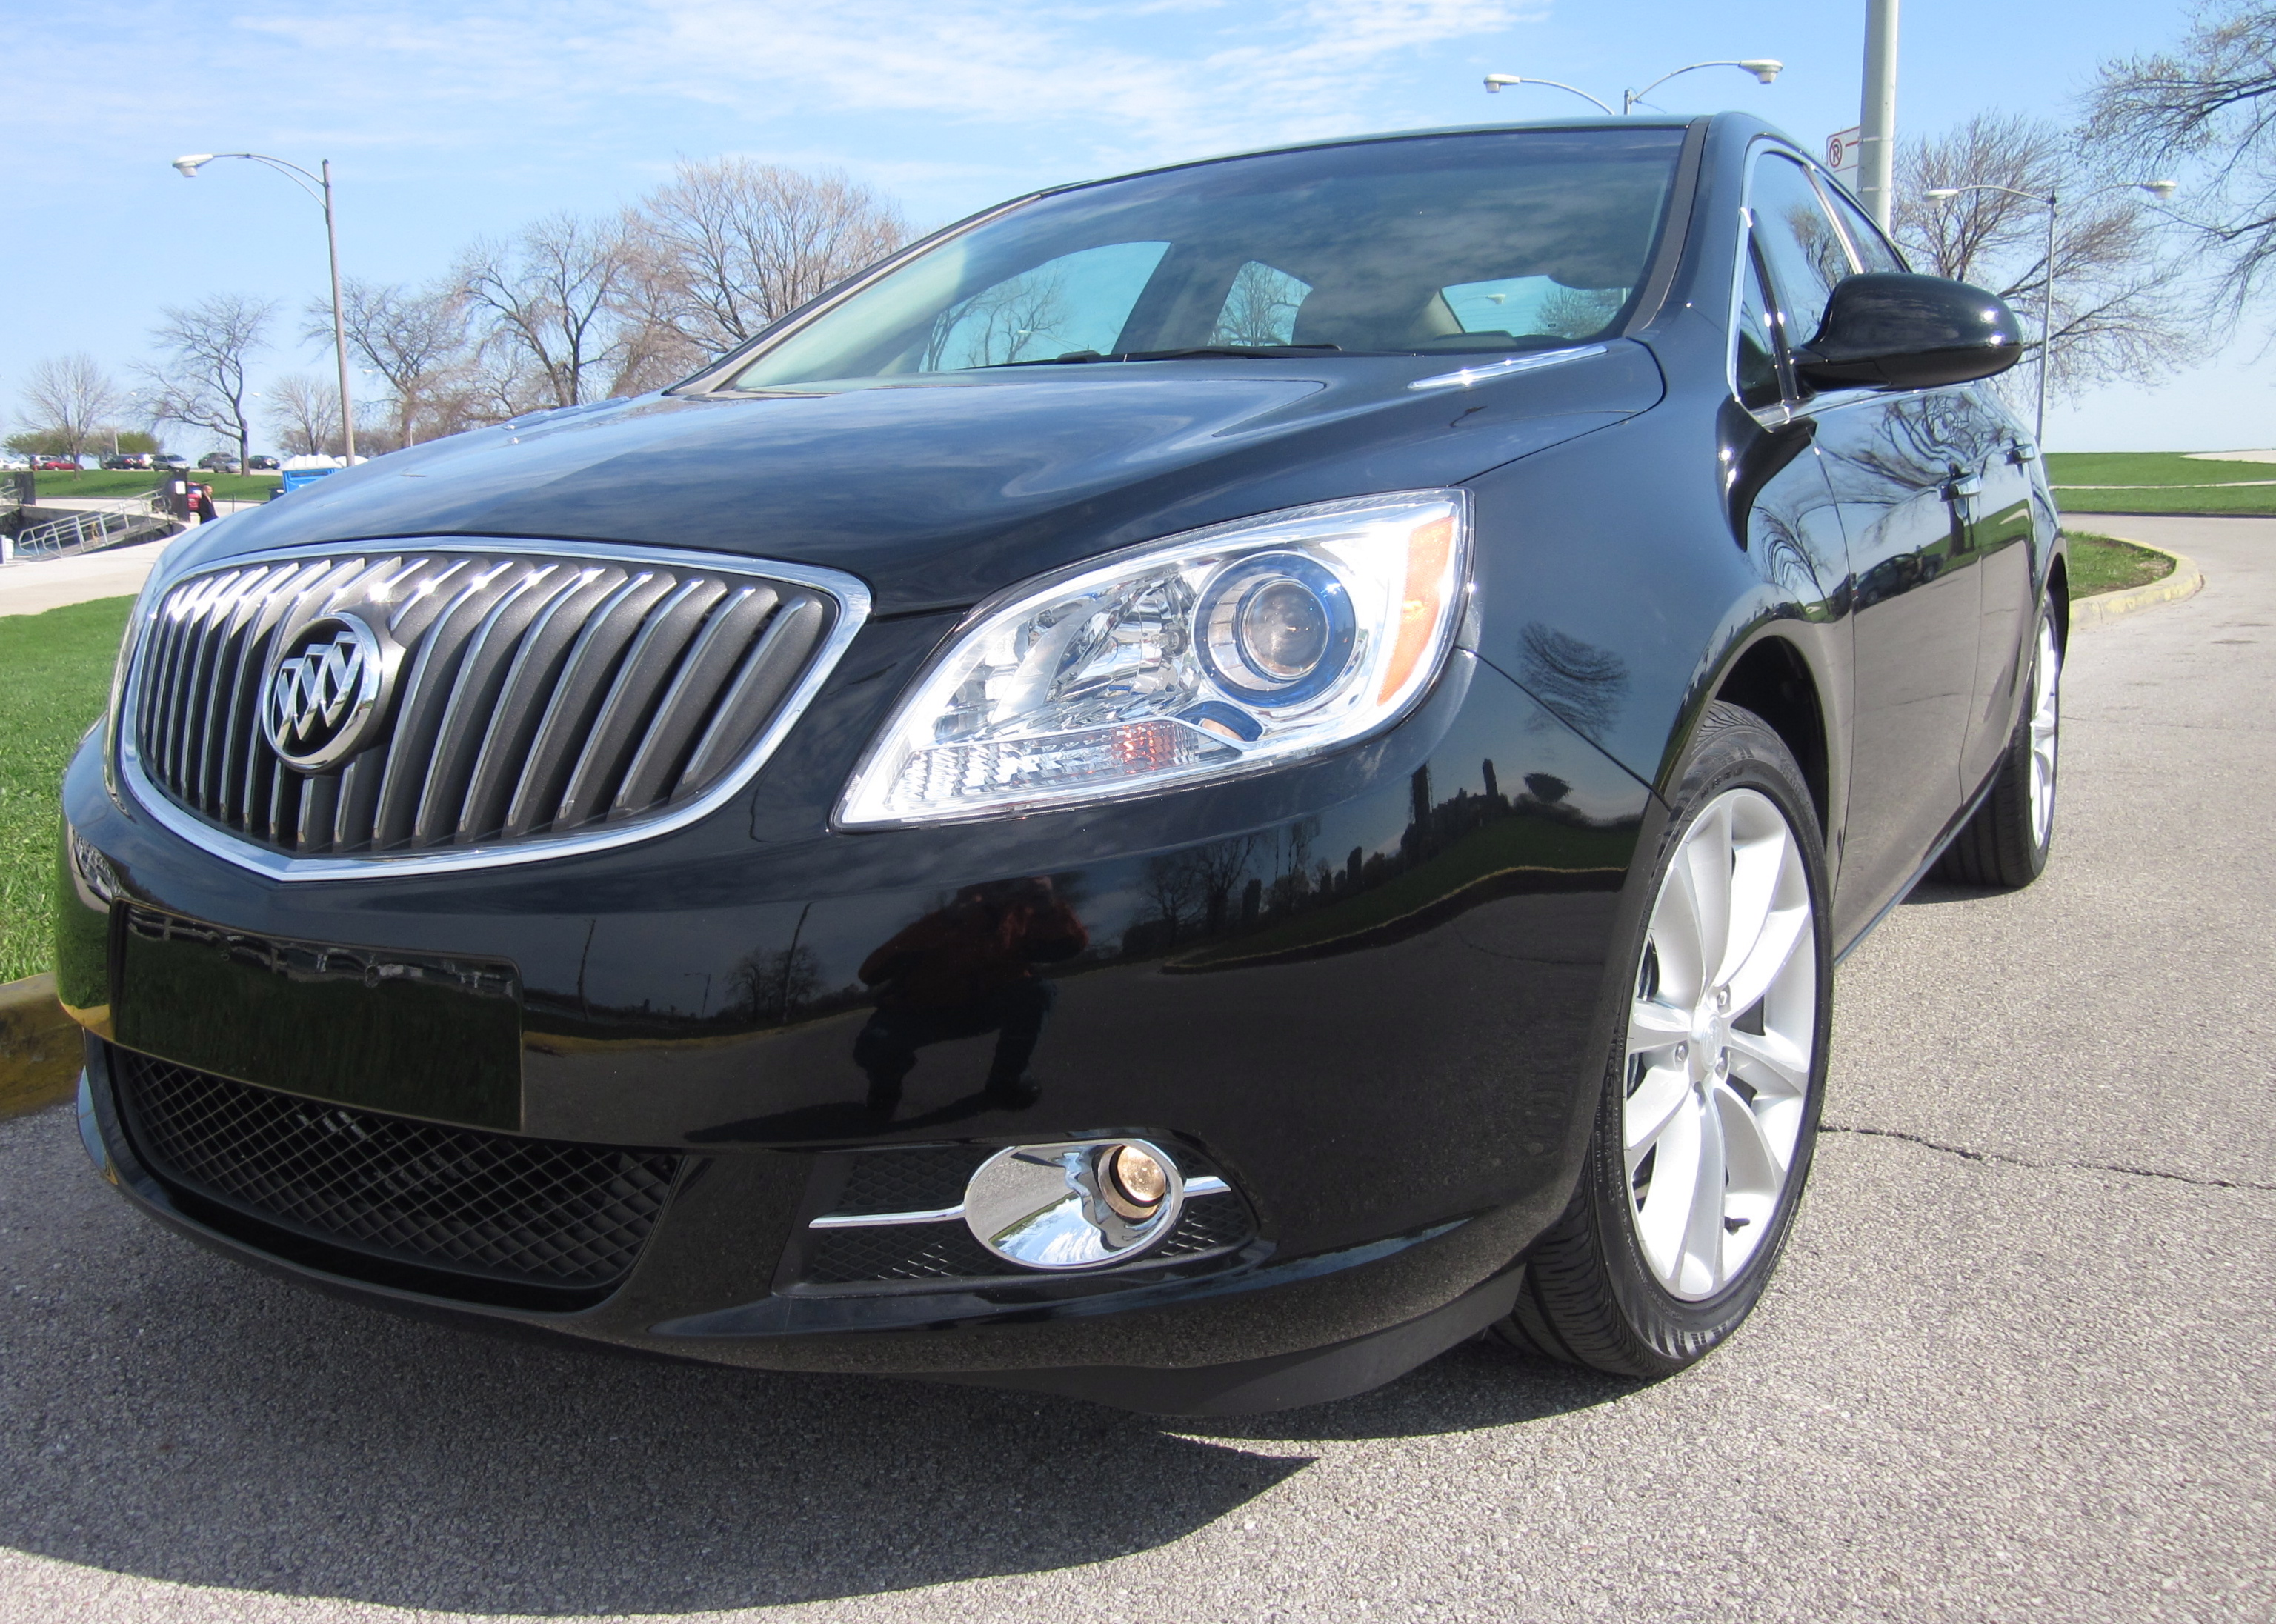 Buick verano photos and reviews submited images